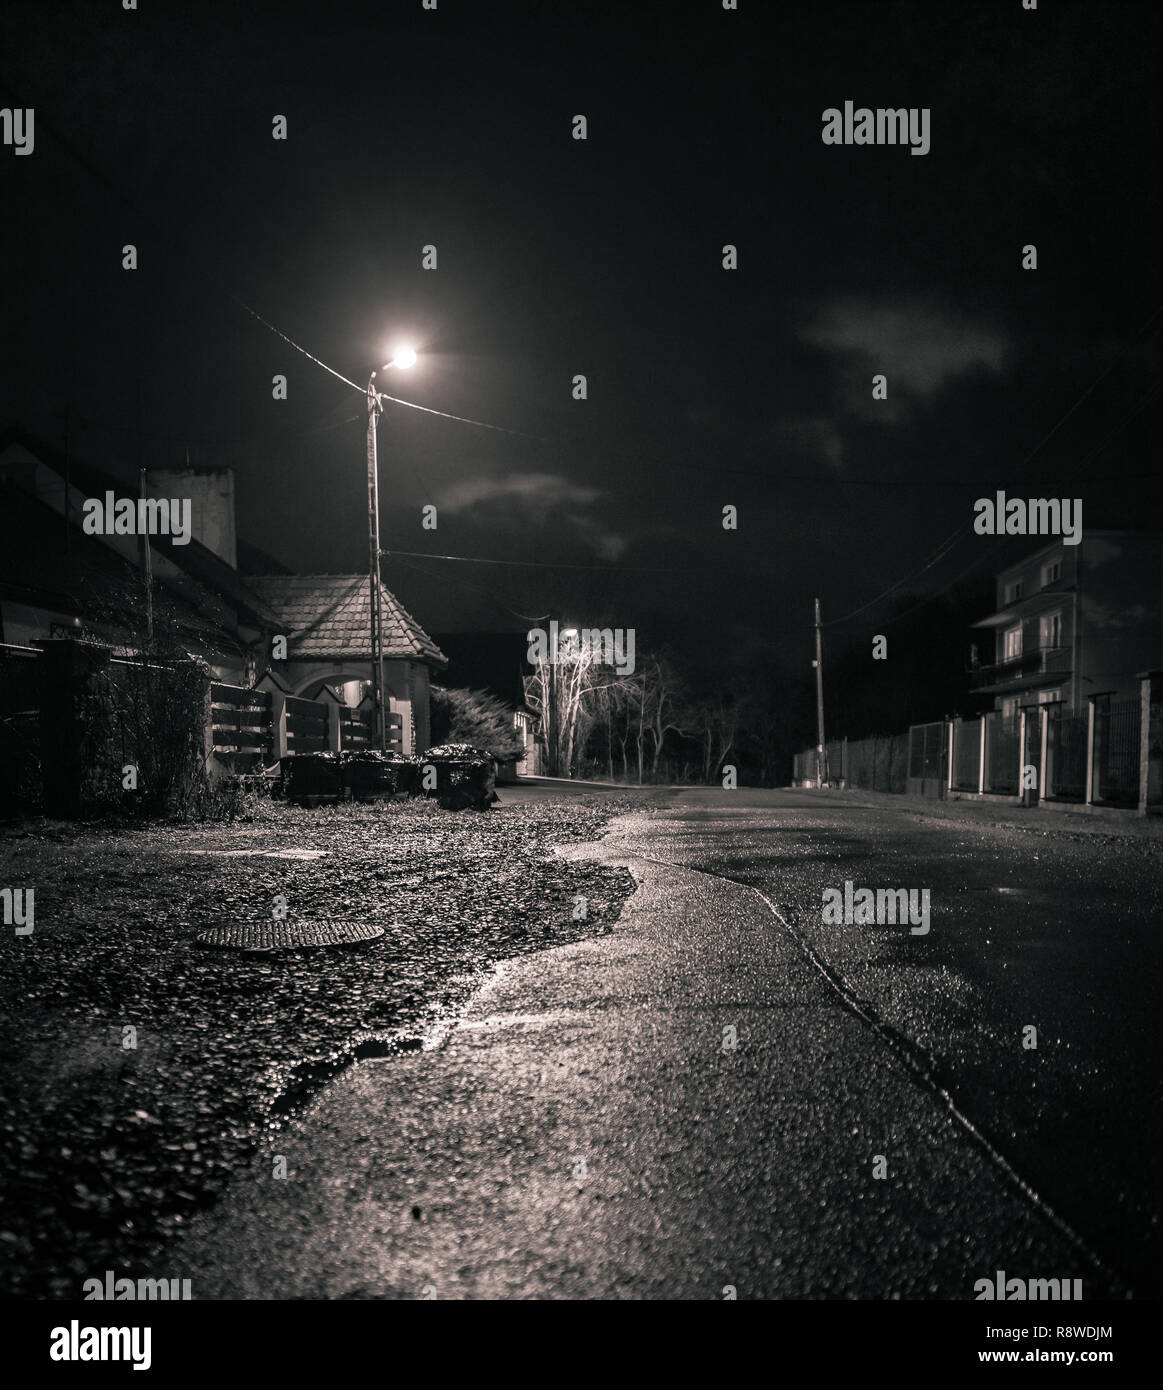 Decrepit back alley of rural Eastern Europe by night, - Stock Image